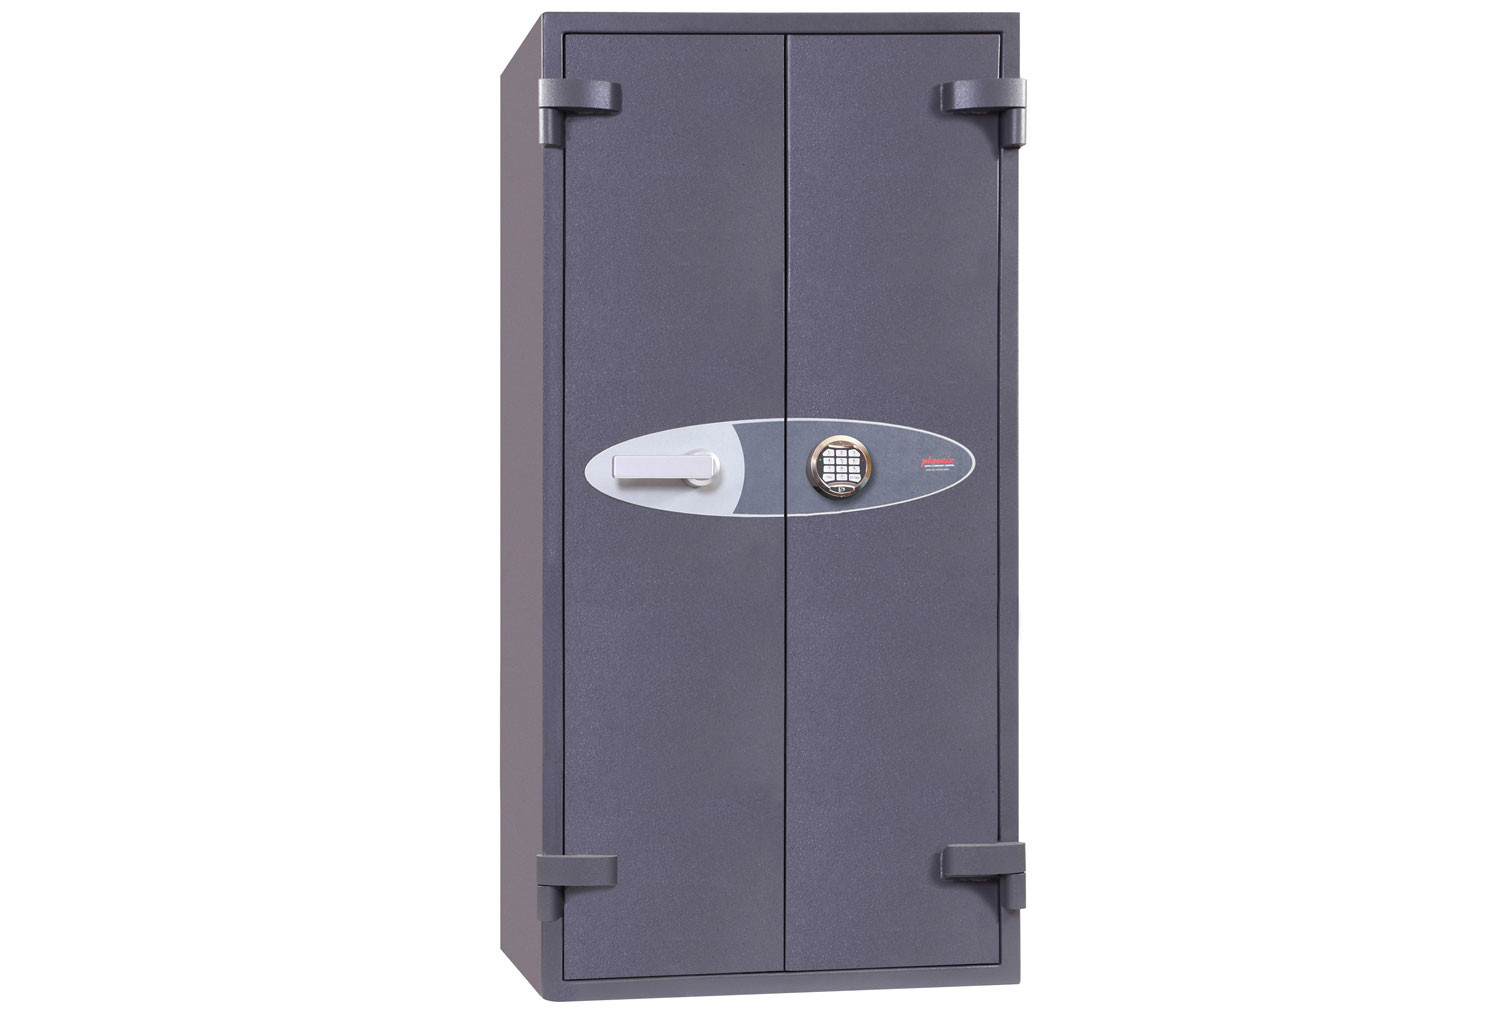 Phoenix Neptune HS1056E High Security Safe With Electronic Lock (553ltrs)